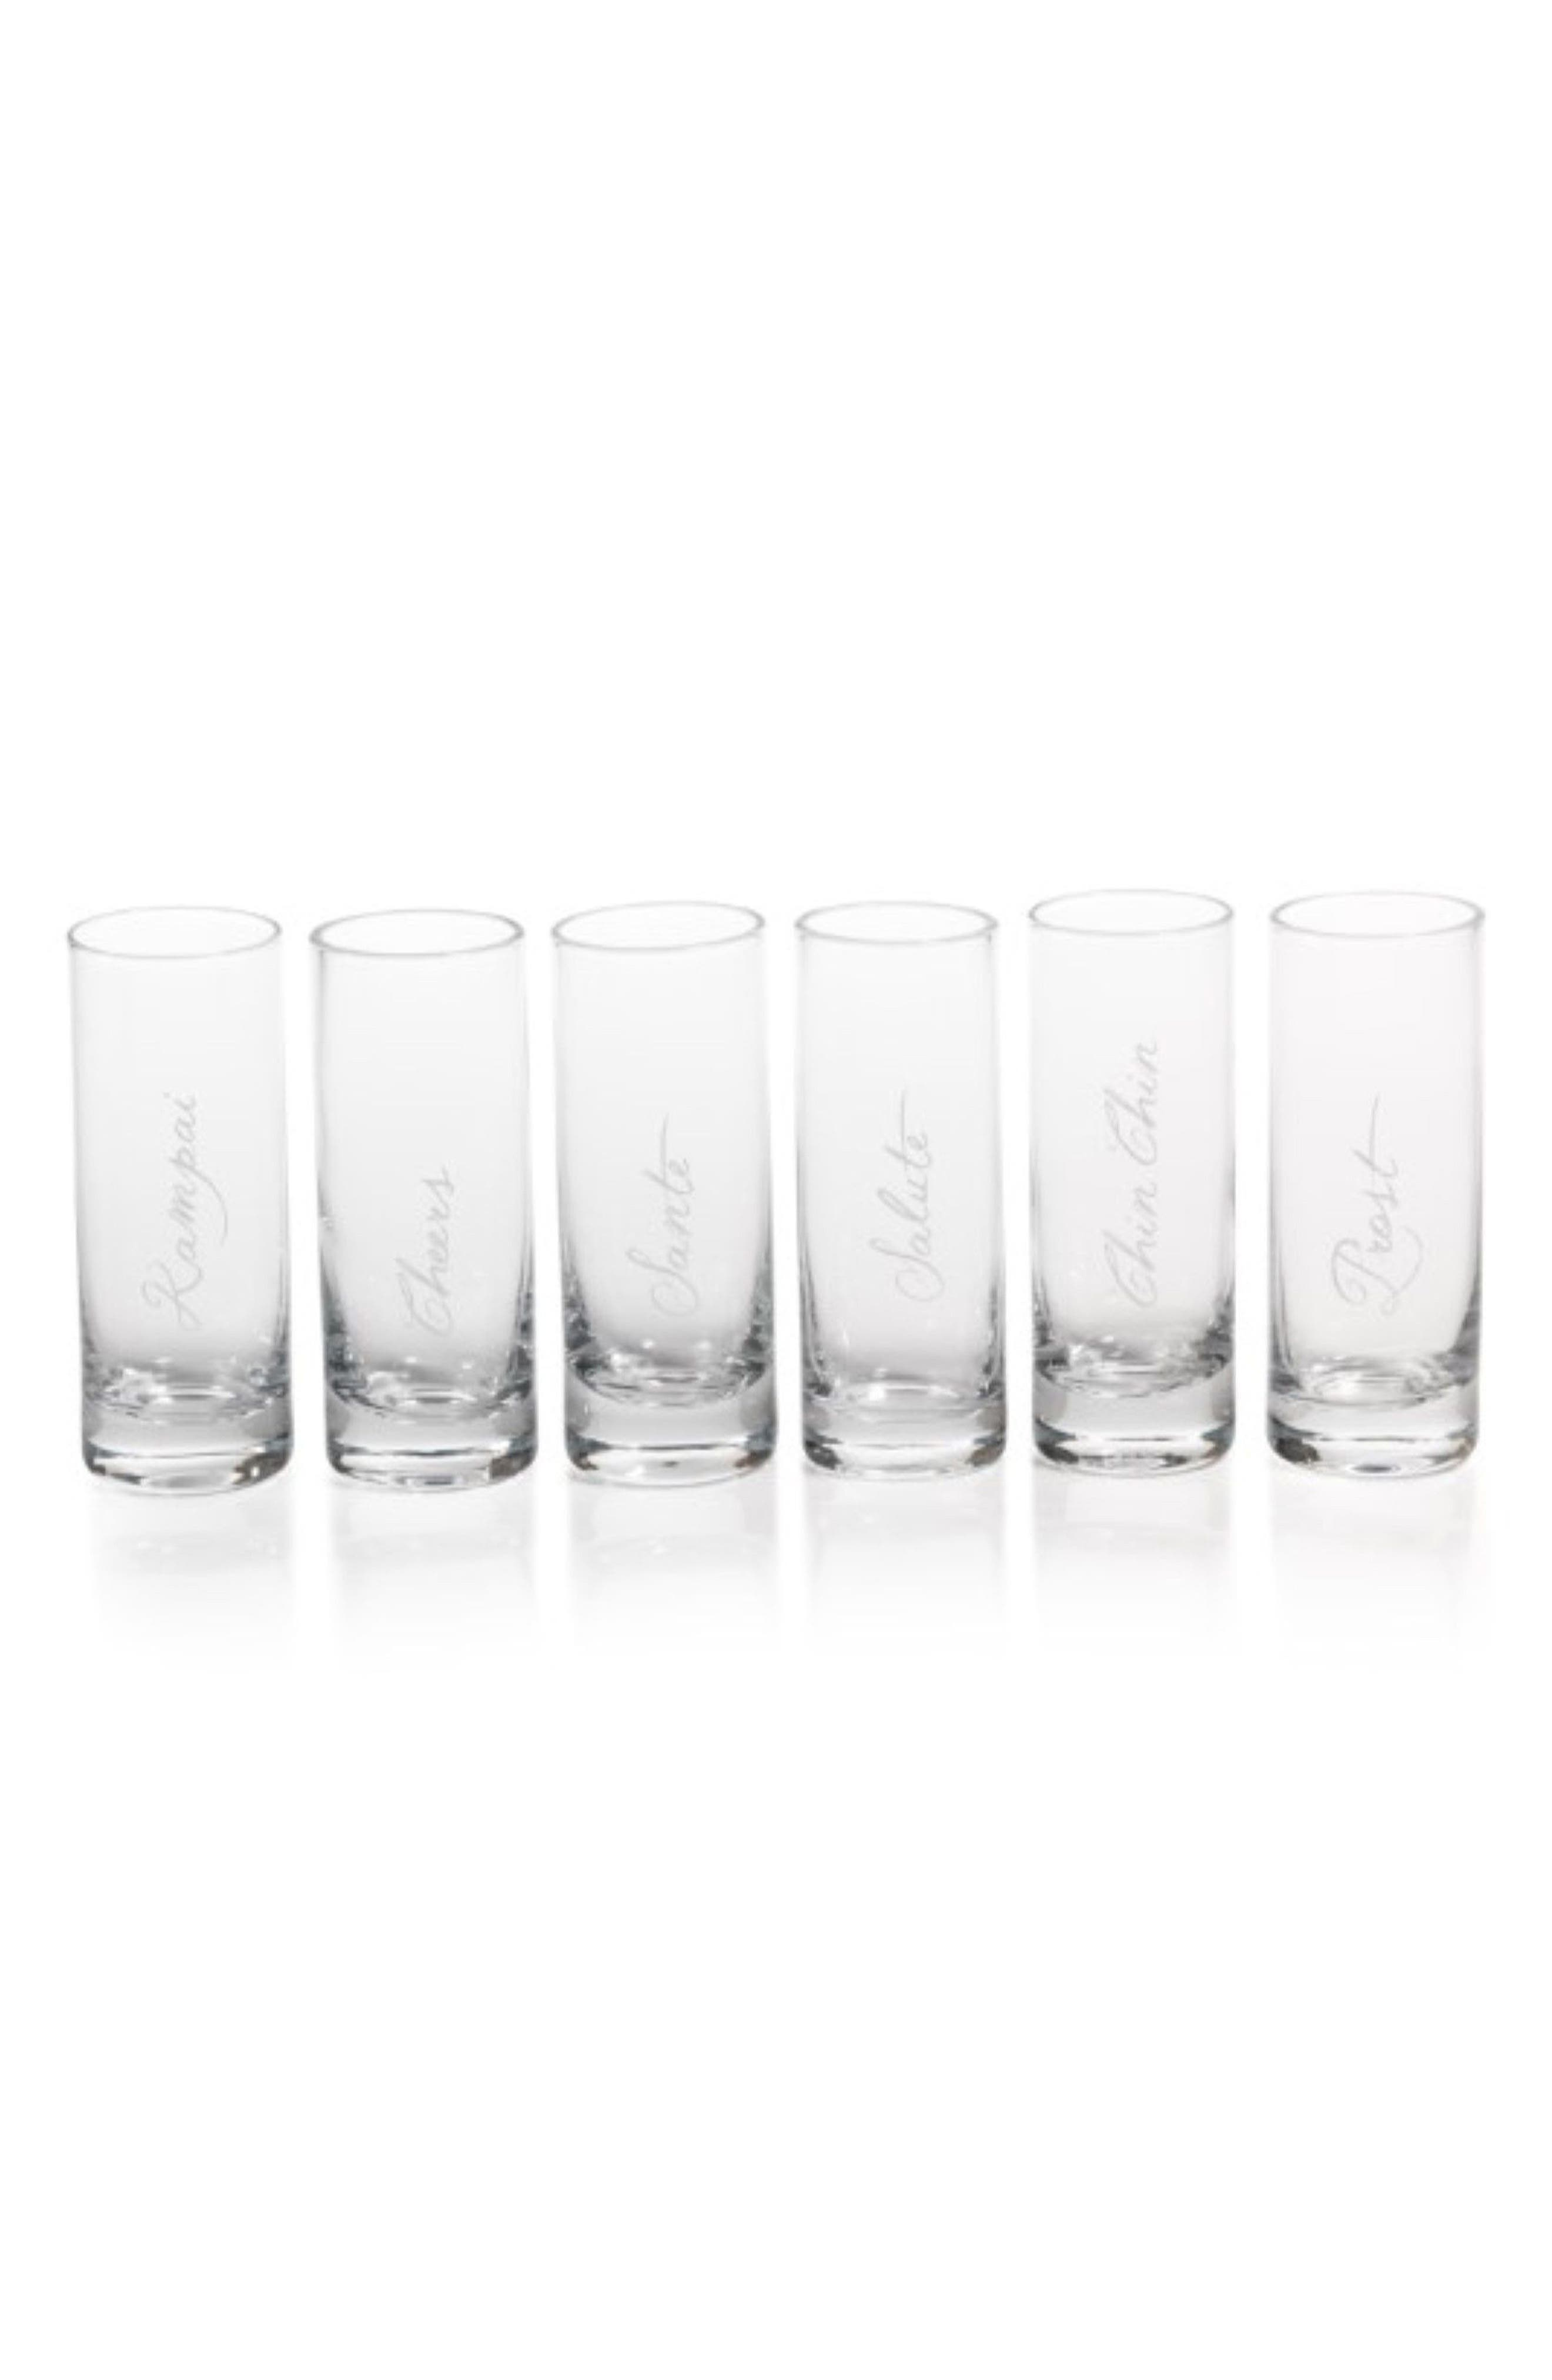 Tula Celebration Set of 6 Shot Glasses,                         Main,                         color, 100